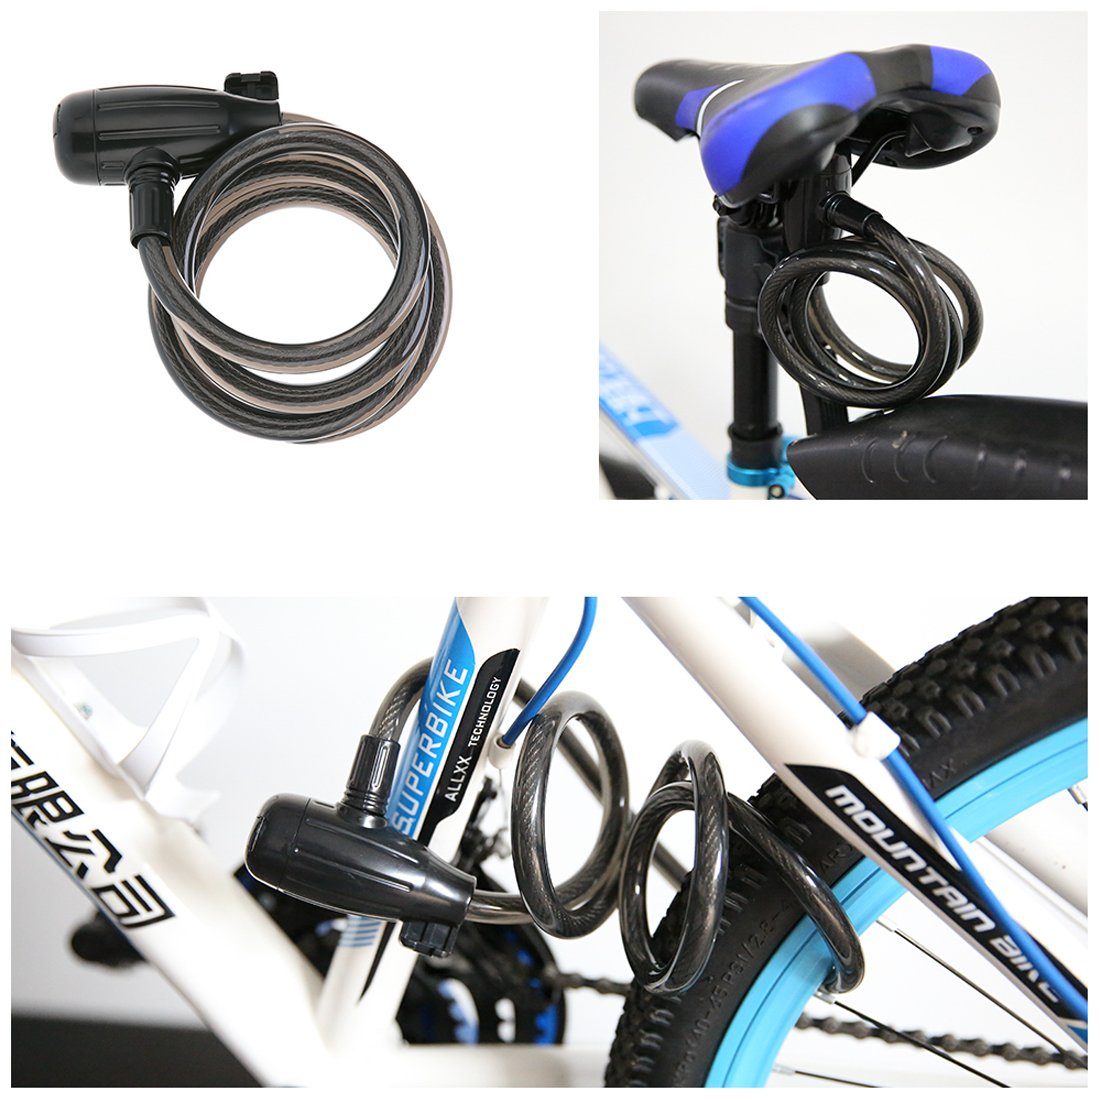 Bike Cable Lock, Shunfa 4ft x 0.47in Heavy Duty Braided Stainless Steel Cable Bicycle Lock with Mounting Bracket and 2 Keys, Security Level 4 by Shunfa (Image #8)